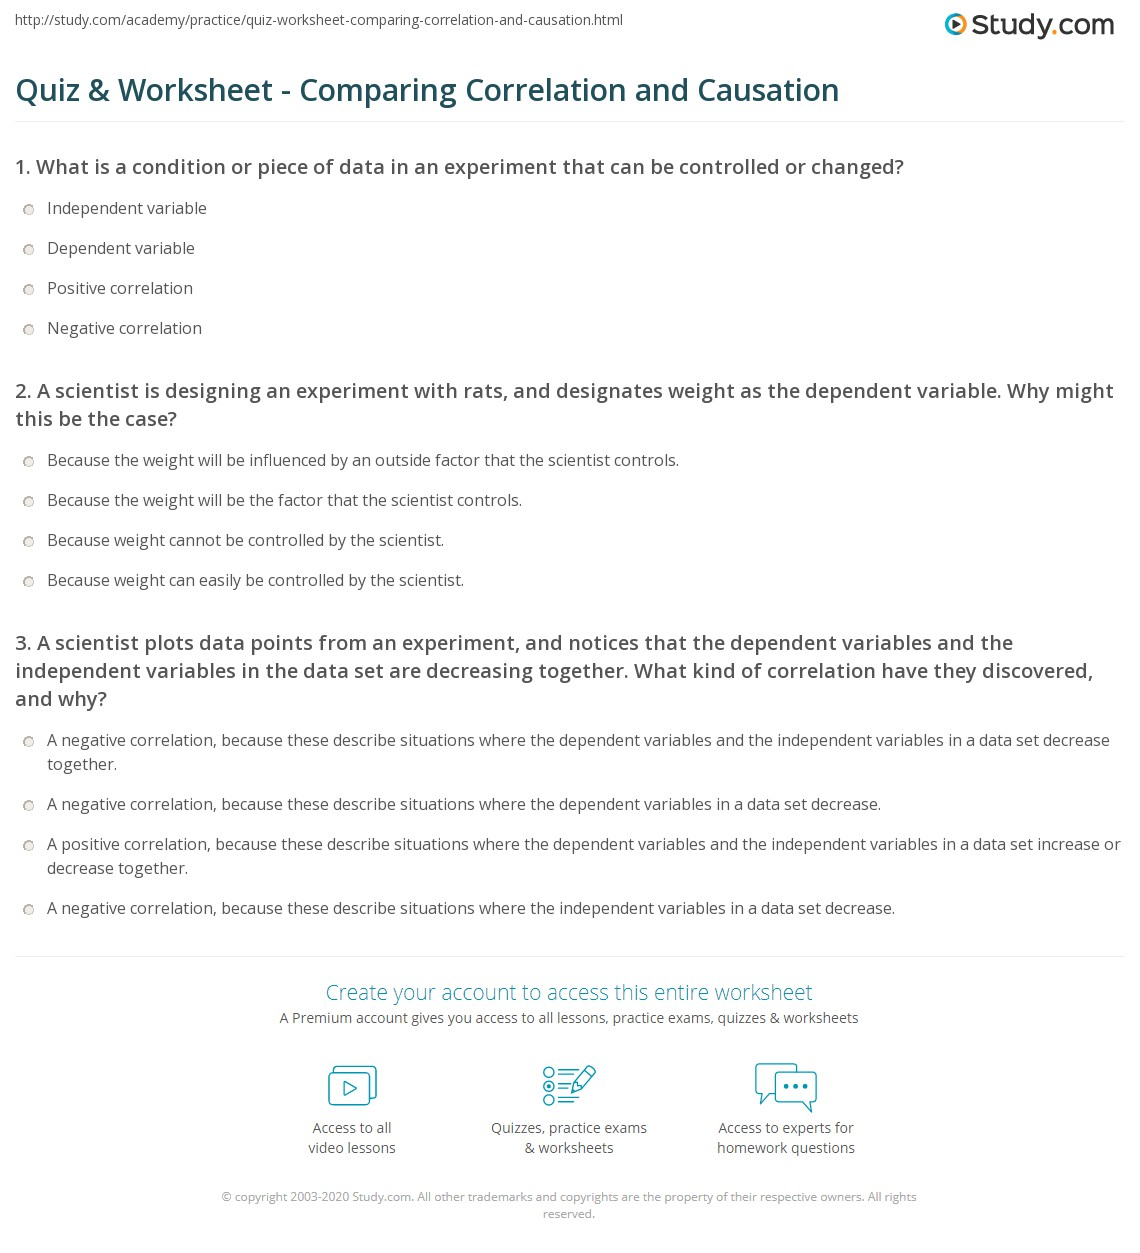 Aldiablosus  Marvellous Quiz Amp Worksheet  Comparing Correlation And Causation  Studycom With Inspiring Print Correlation Vs Causation Differences Amp Definition Worksheet With Delightful Free Science Worksheets For Nd Grade Also Plural Nouns Worksheets Nd Grade In Addition Free Math Minute Worksheets And Bill Nye The Science Guy Video Worksheets As Well As Participle Phrases Worksheet Additionally Ratio And Unit Rate Worksheets From Studycom With Aldiablosus  Inspiring Quiz Amp Worksheet  Comparing Correlation And Causation  Studycom With Delightful Print Correlation Vs Causation Differences Amp Definition Worksheet And Marvellous Free Science Worksheets For Nd Grade Also Plural Nouns Worksheets Nd Grade In Addition Free Math Minute Worksheets From Studycom